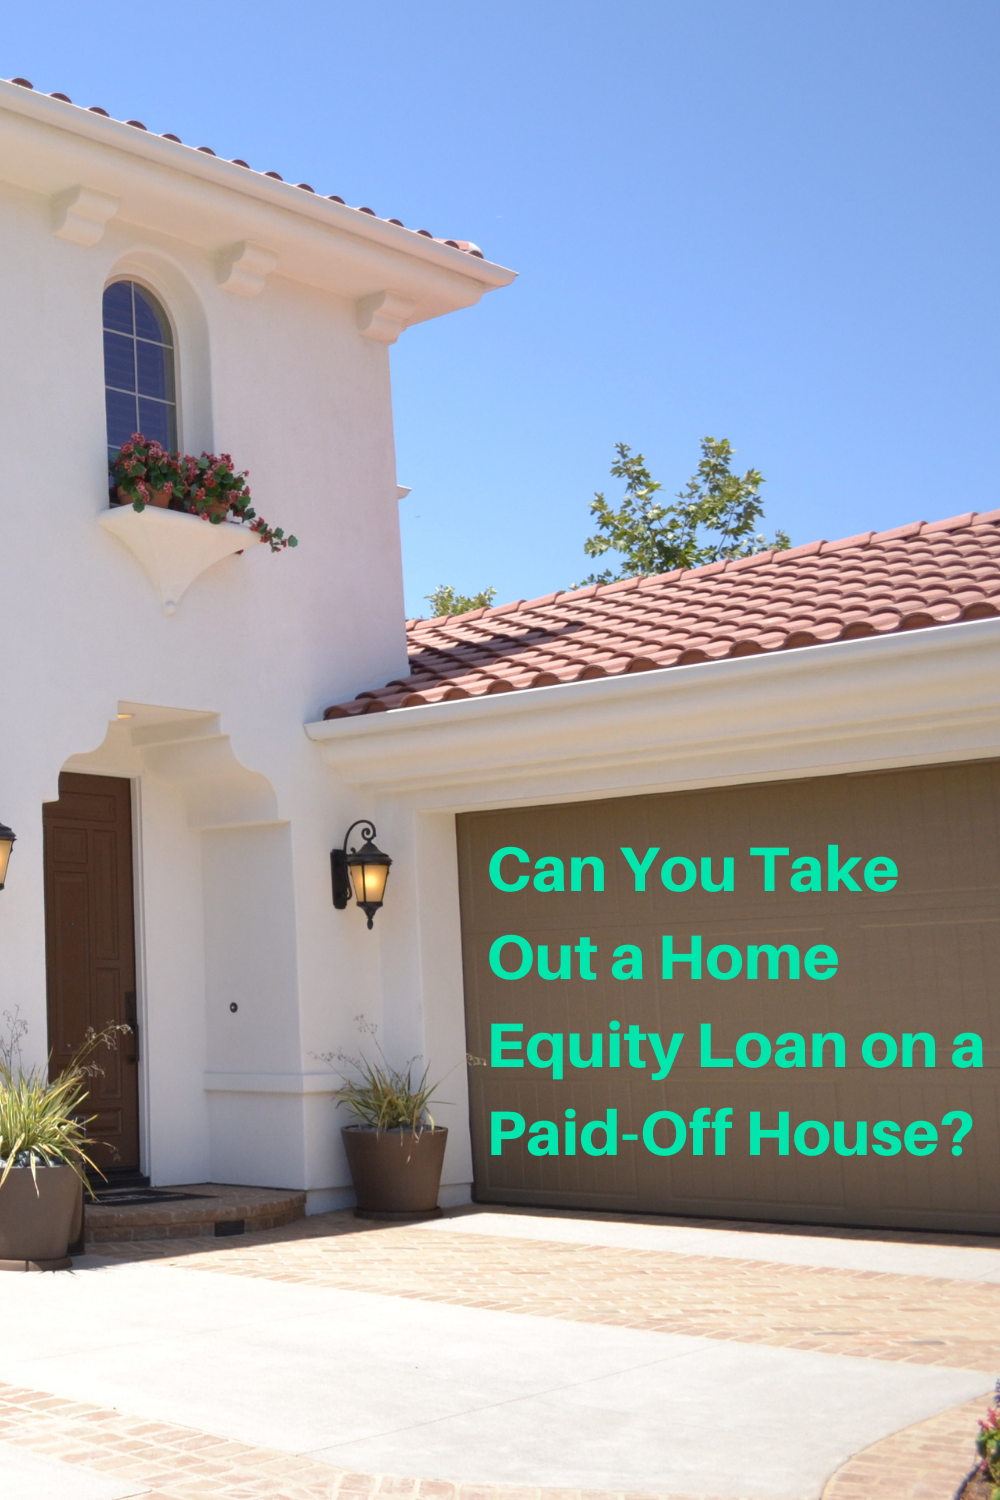 Taking Out A Home Equity Loan On A Paid Off House Lendedu Home Equity Loan Home Equity Home Loans